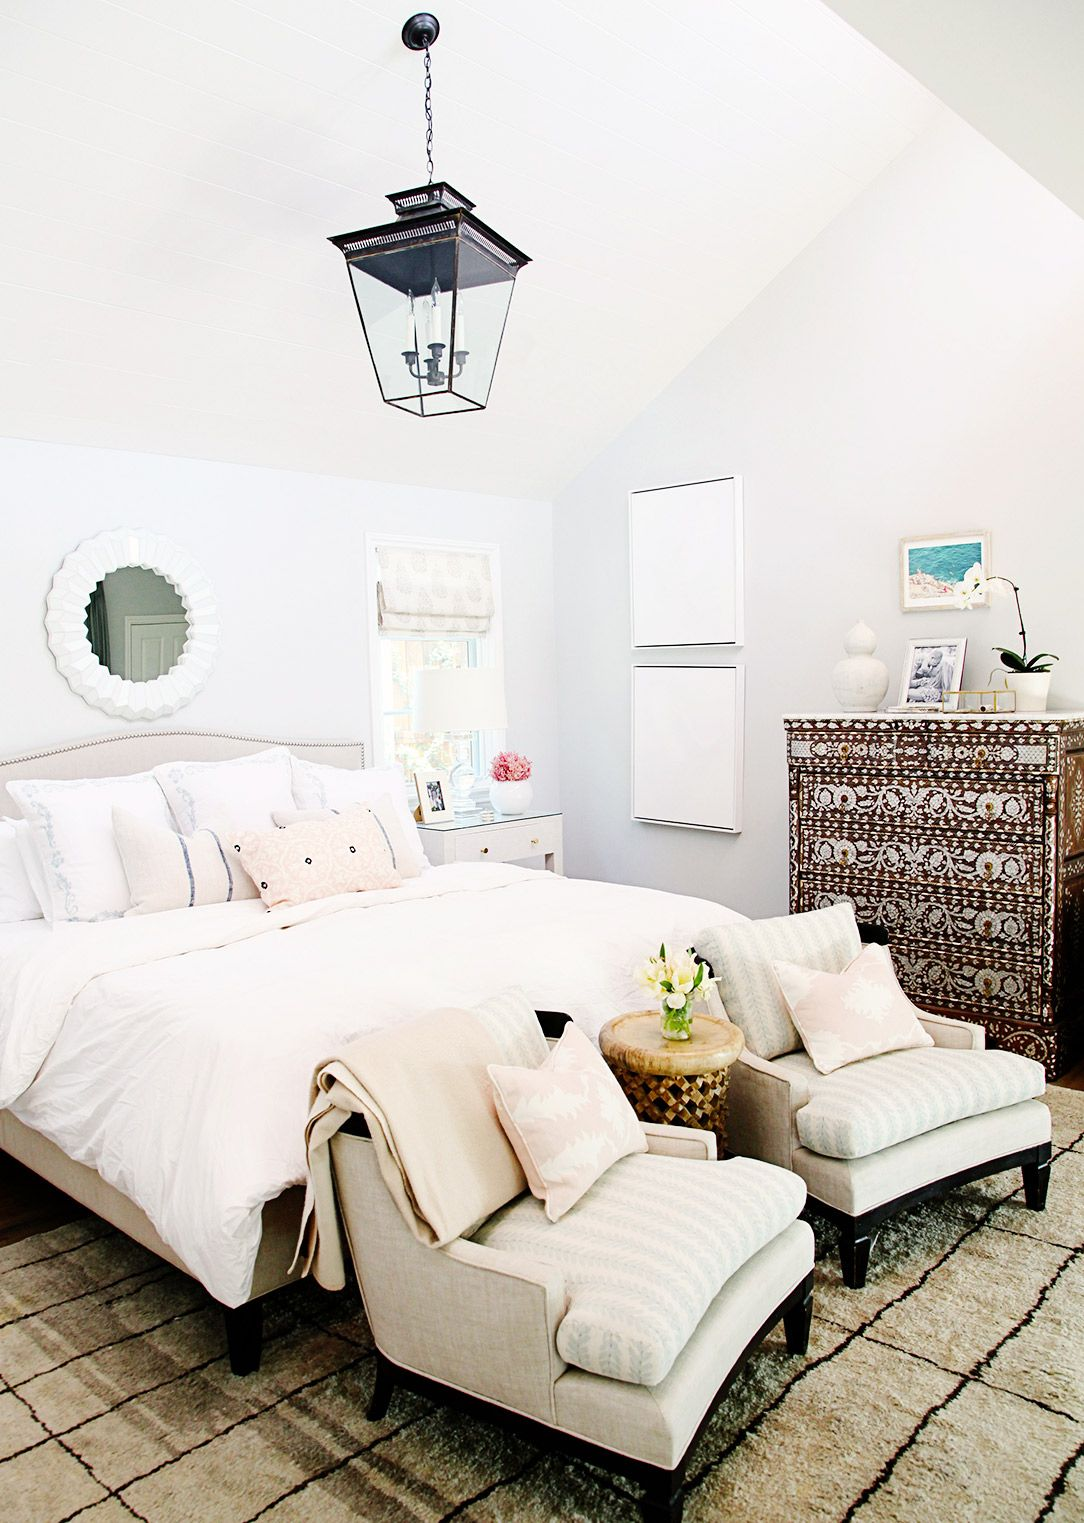 Napa Bedroom Furniture Home Tour A Fresh Family Home Inspired By Napa Master Bedrooms